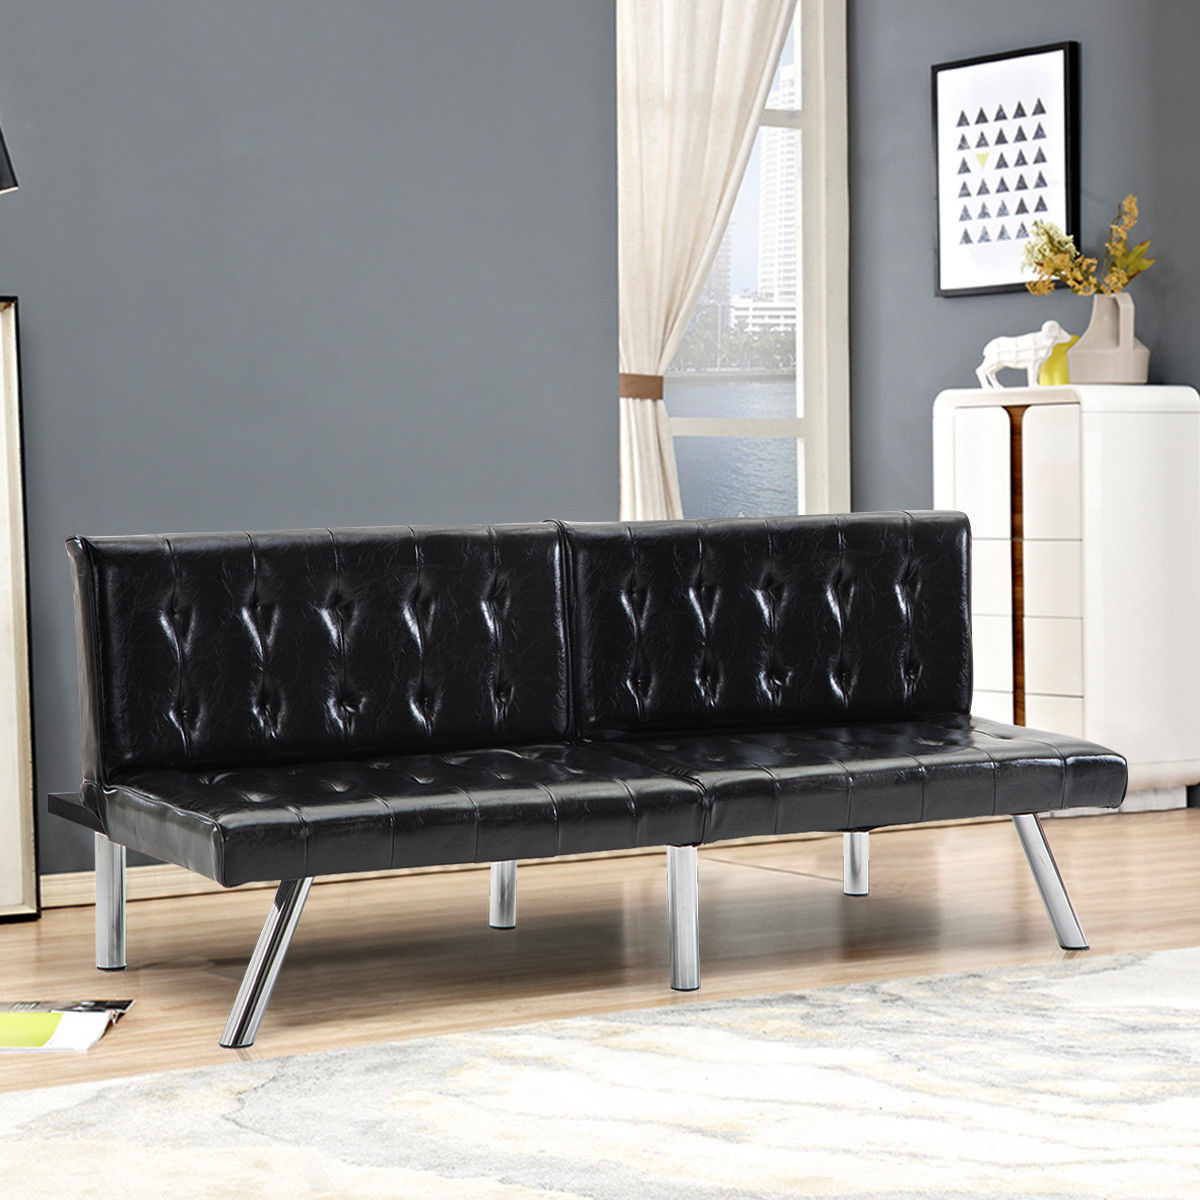 Buy futon beds Online with Discount Price